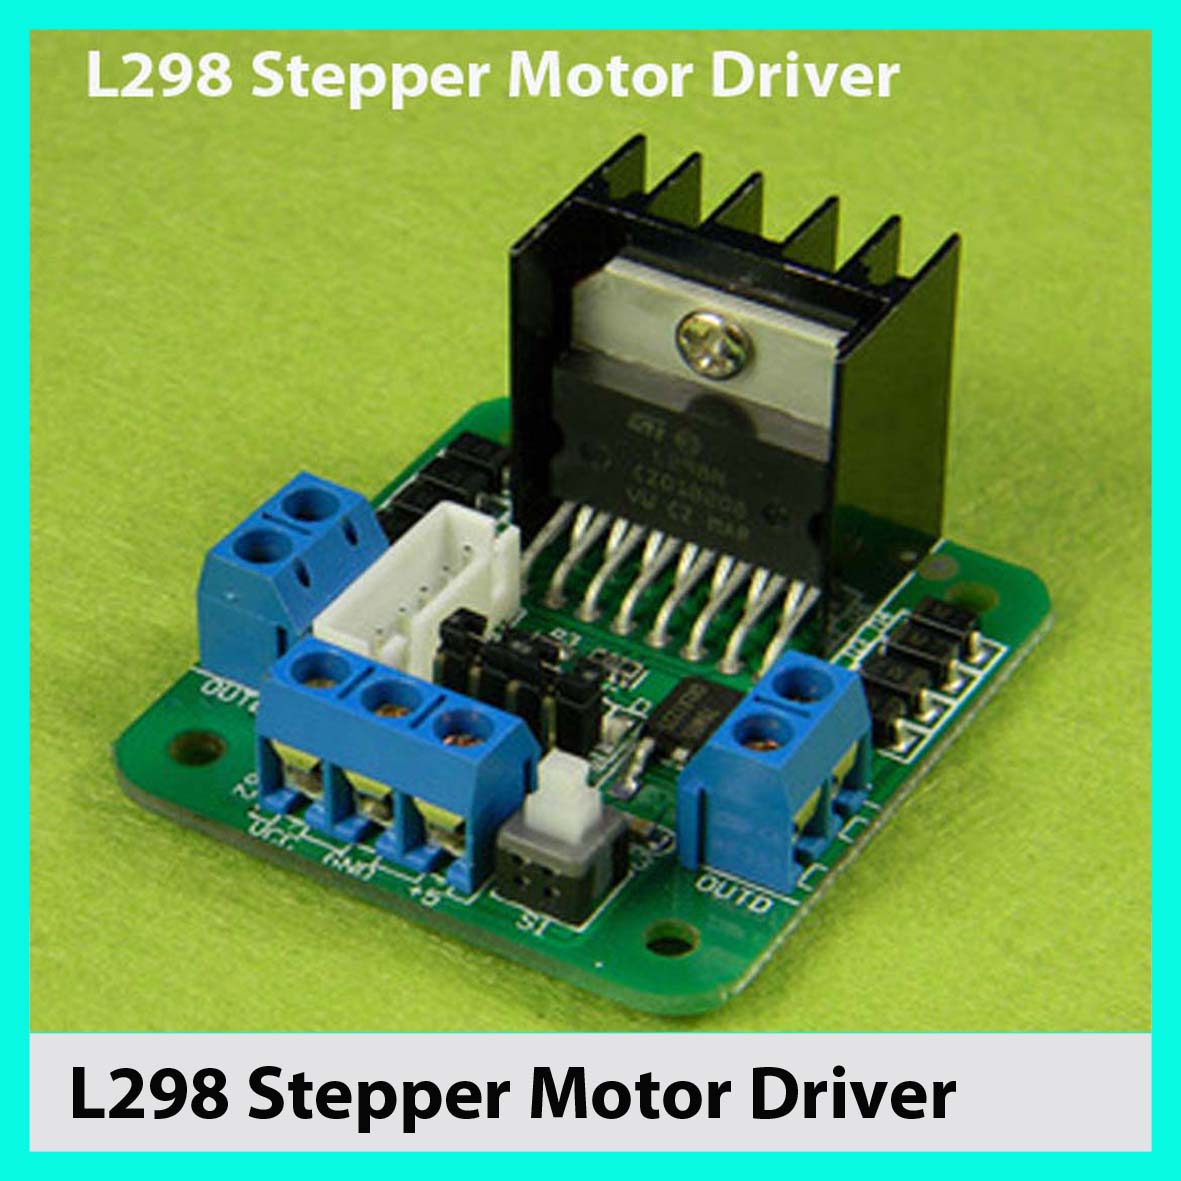 Stepper Motor Driver Scematics